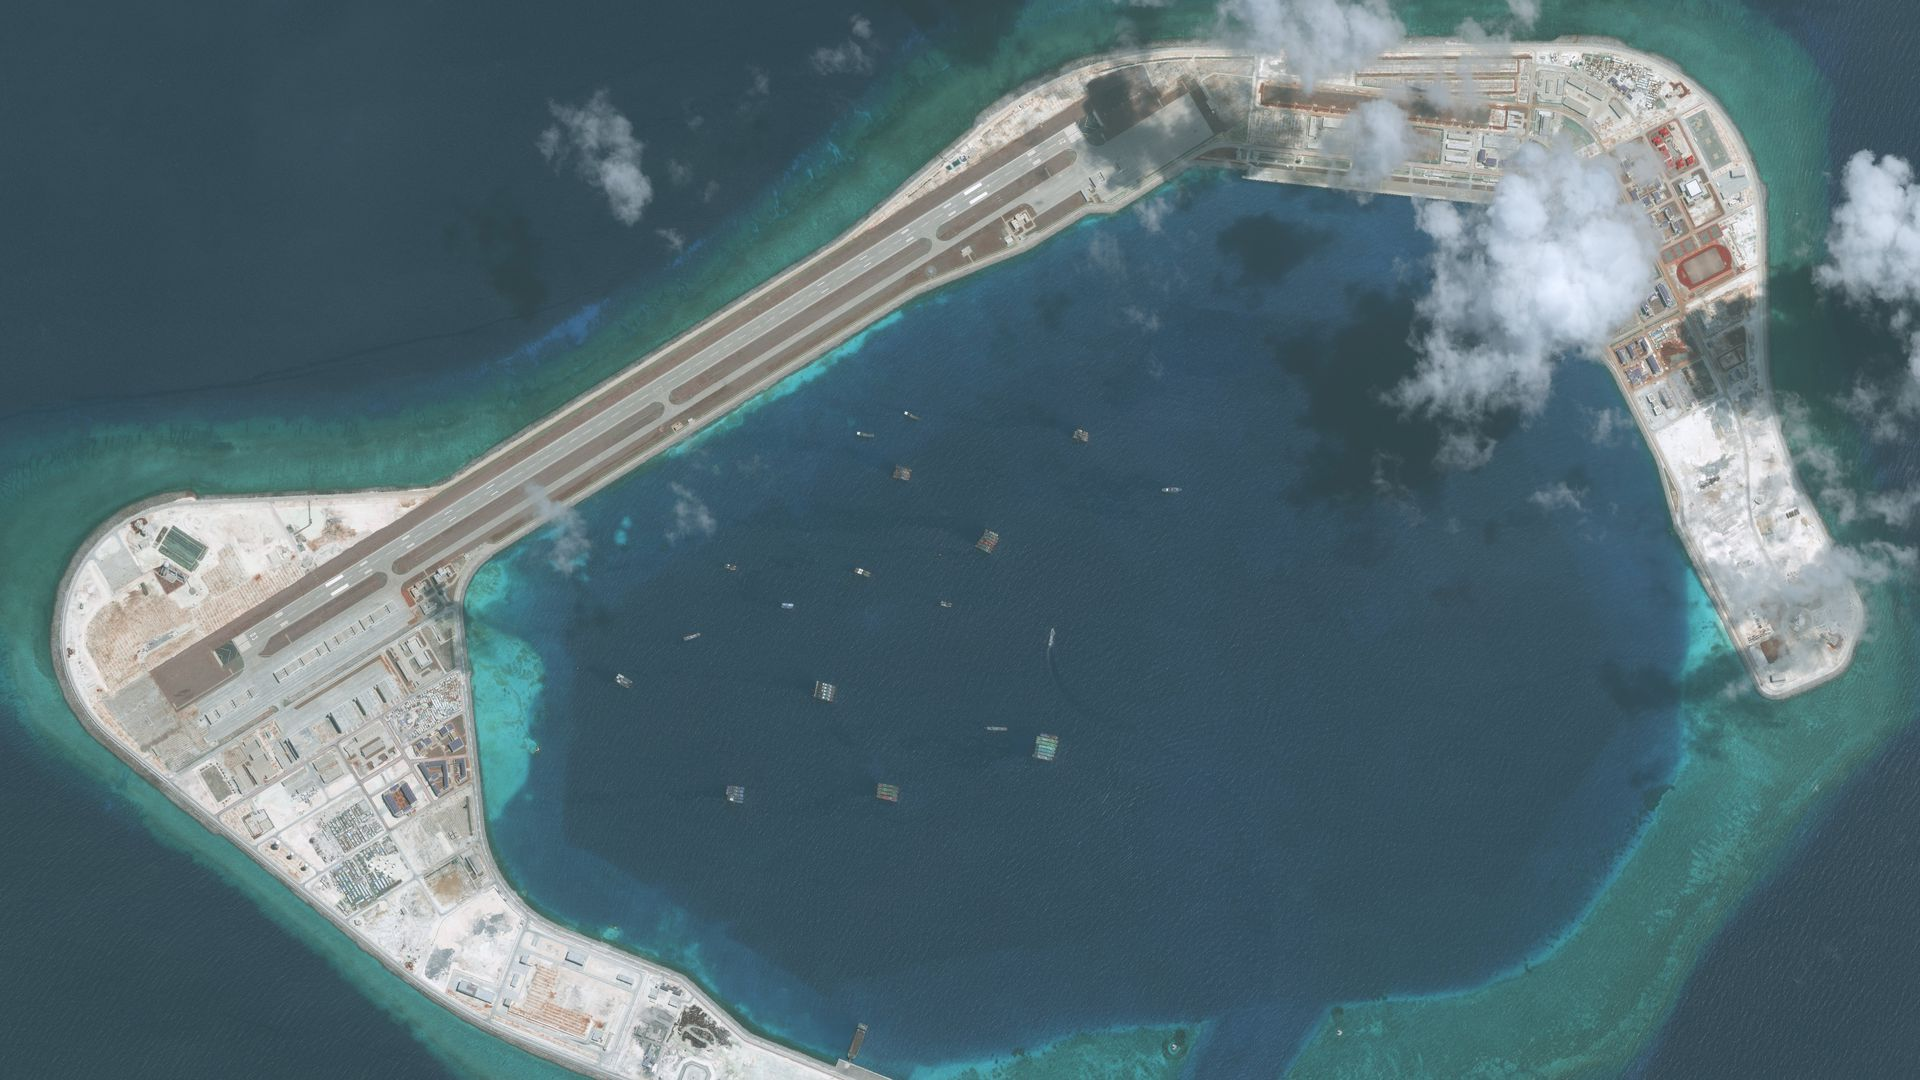 Imagery of the Subi Reef in the South China Sea, a part of the Spratly Islands group. Photo DigitalGlobe via Getty Images.